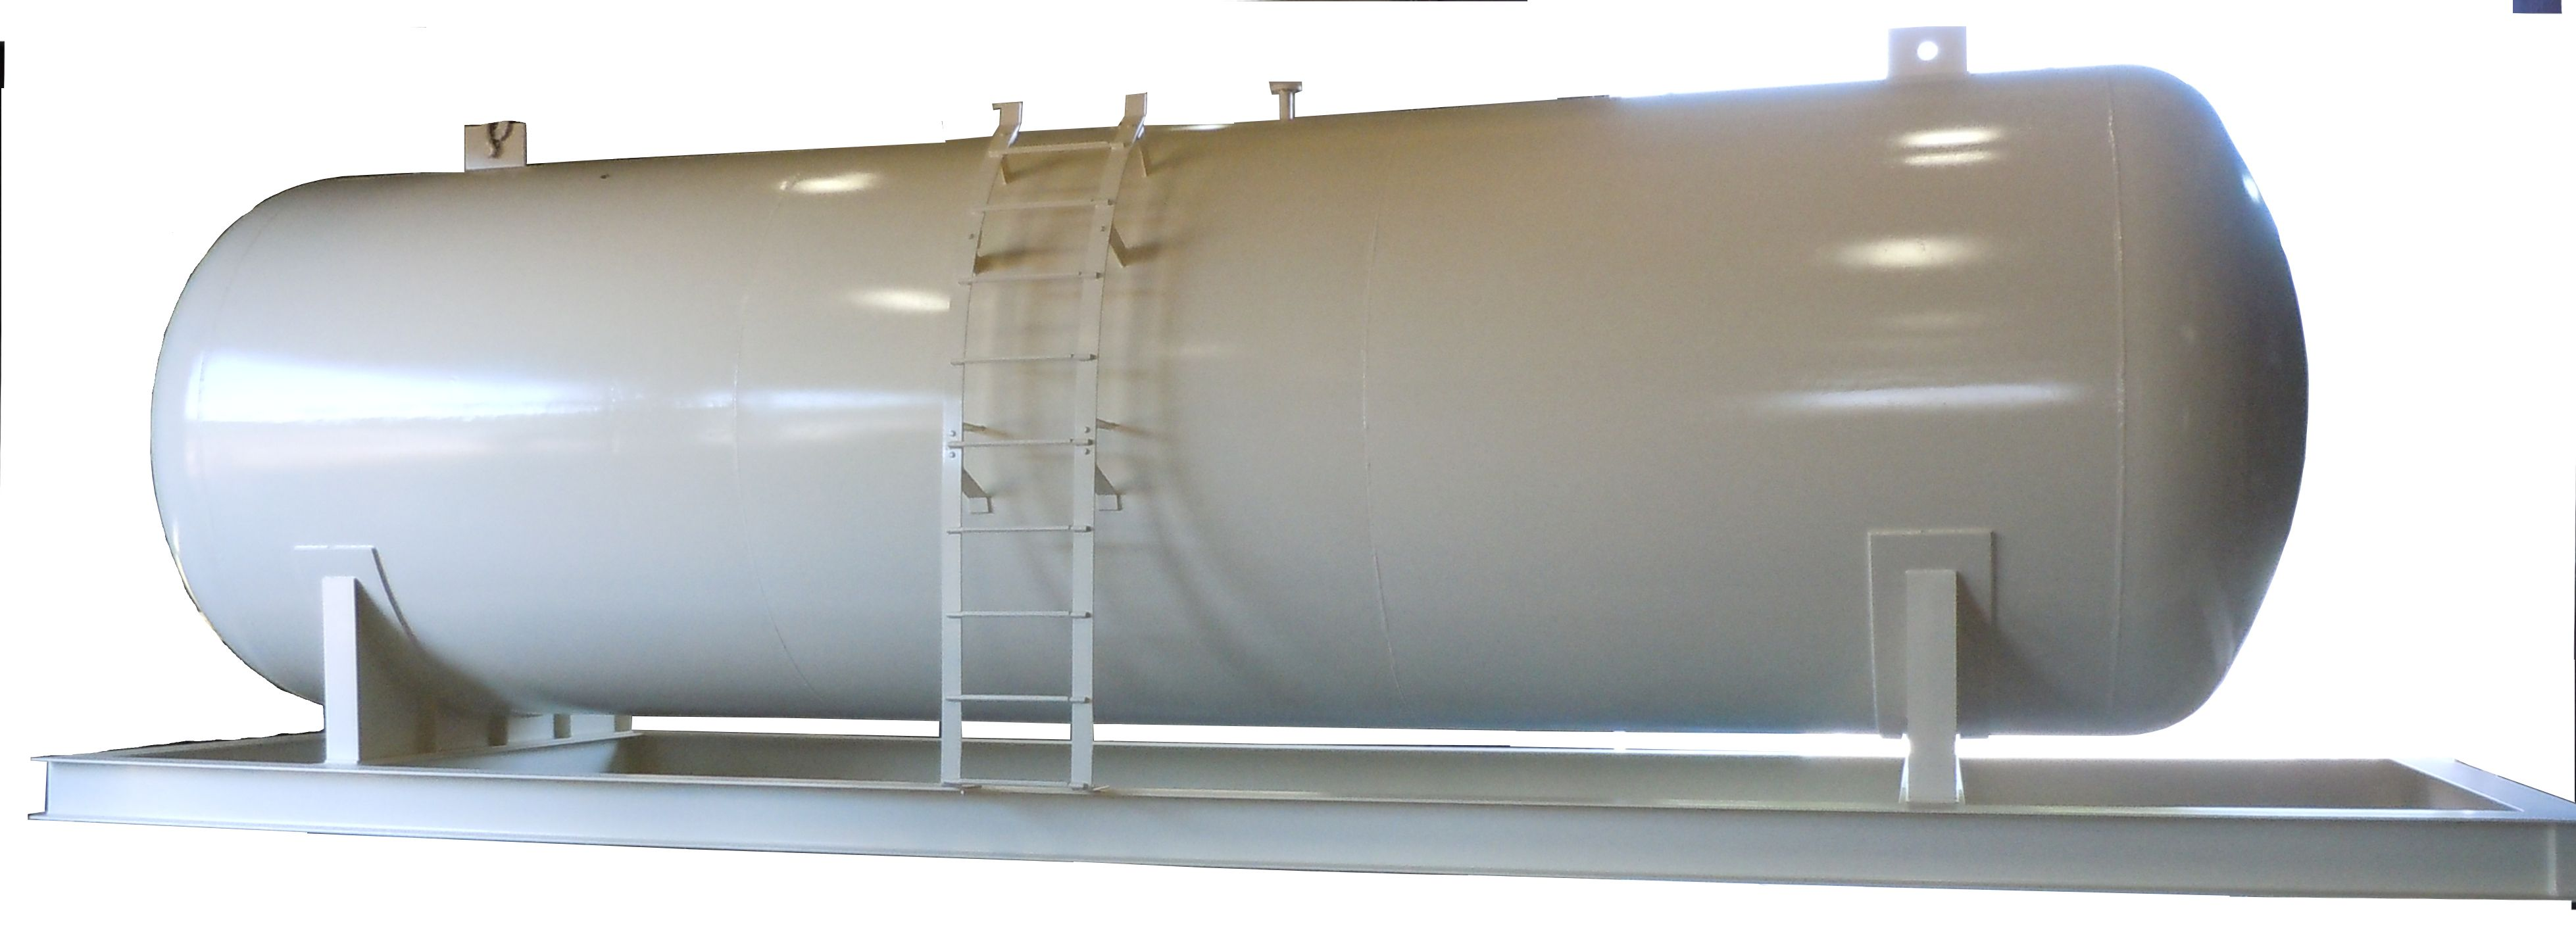 Atmospheric Storage Tanks are specifically designed for use in residential commercial or institutional buildings fire  sc 1 st  Pinterest & Atmospheric Storage Tanks are specifically designed for use in ...